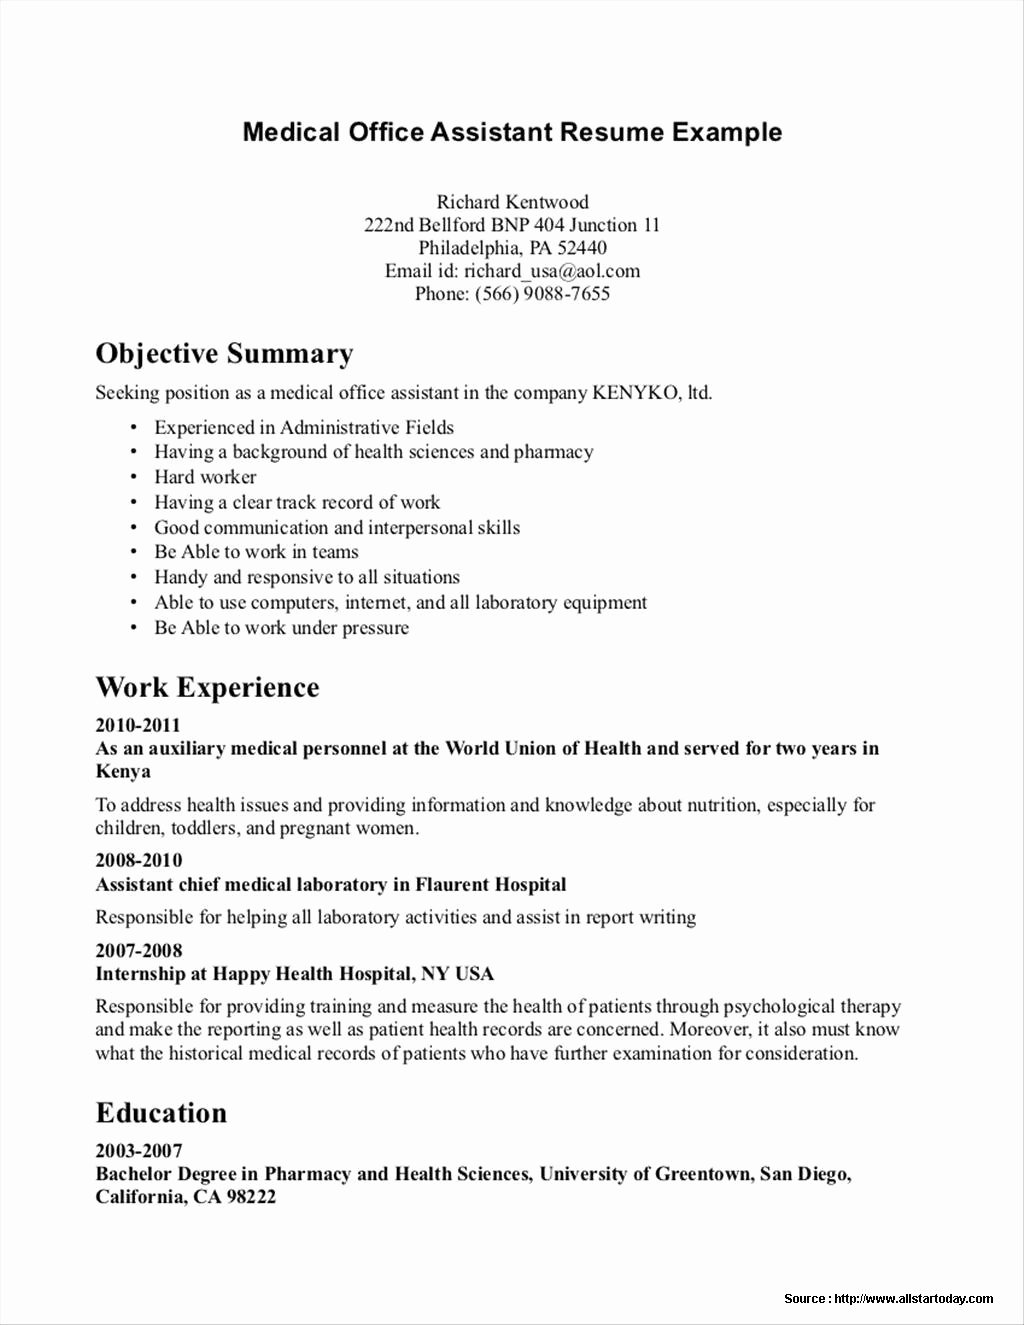 Samples Resumes for Medical Fice assistant Resume